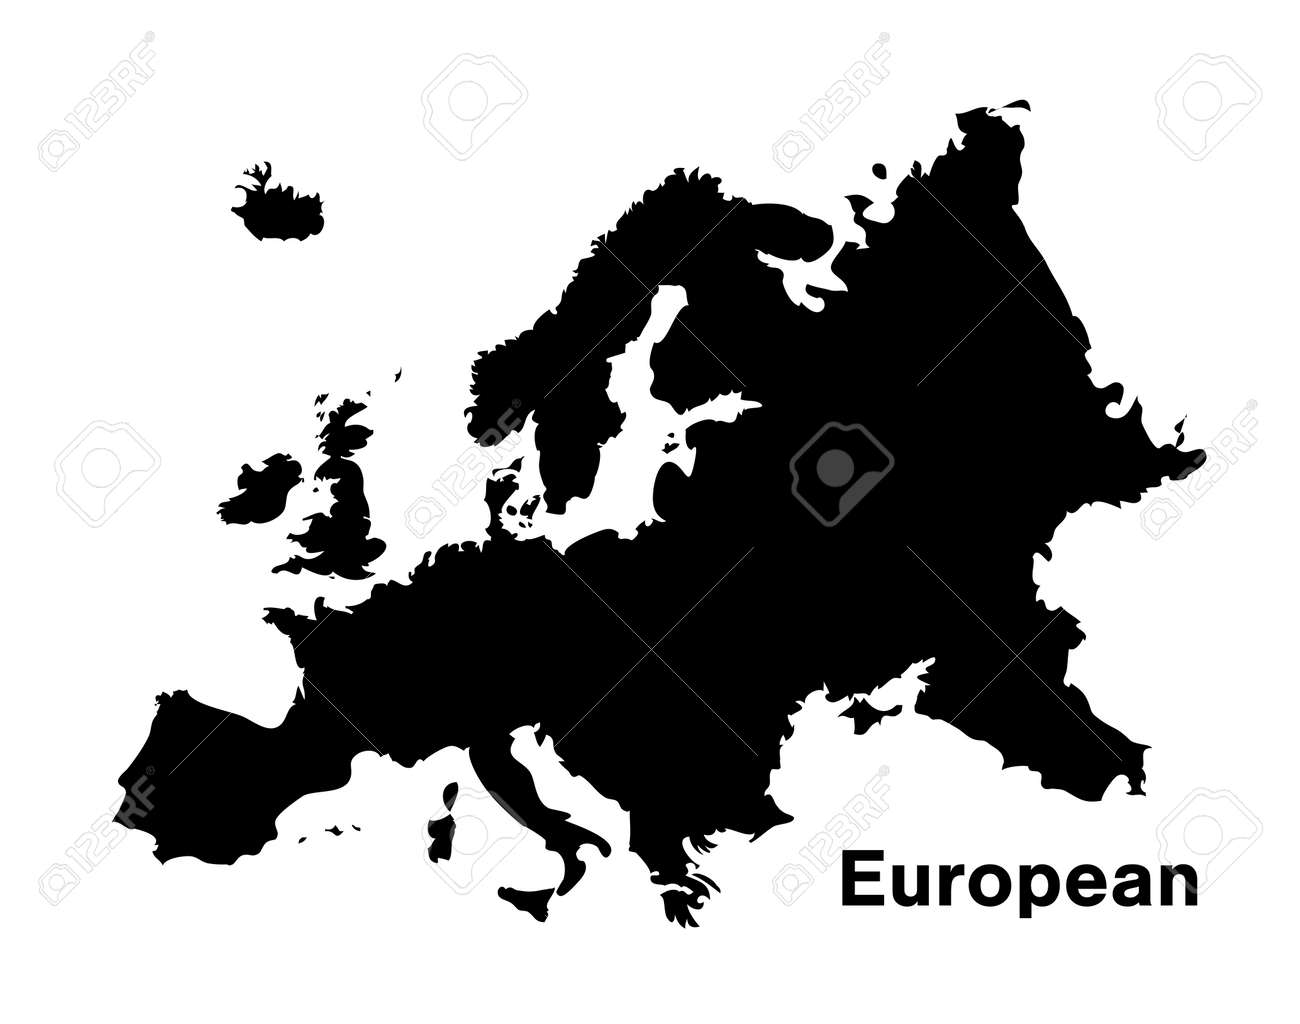 Picture of: Black Silhouette European Map On White Background Royalty Free Cliparts Vectors And Stock Illustration Image 95523353